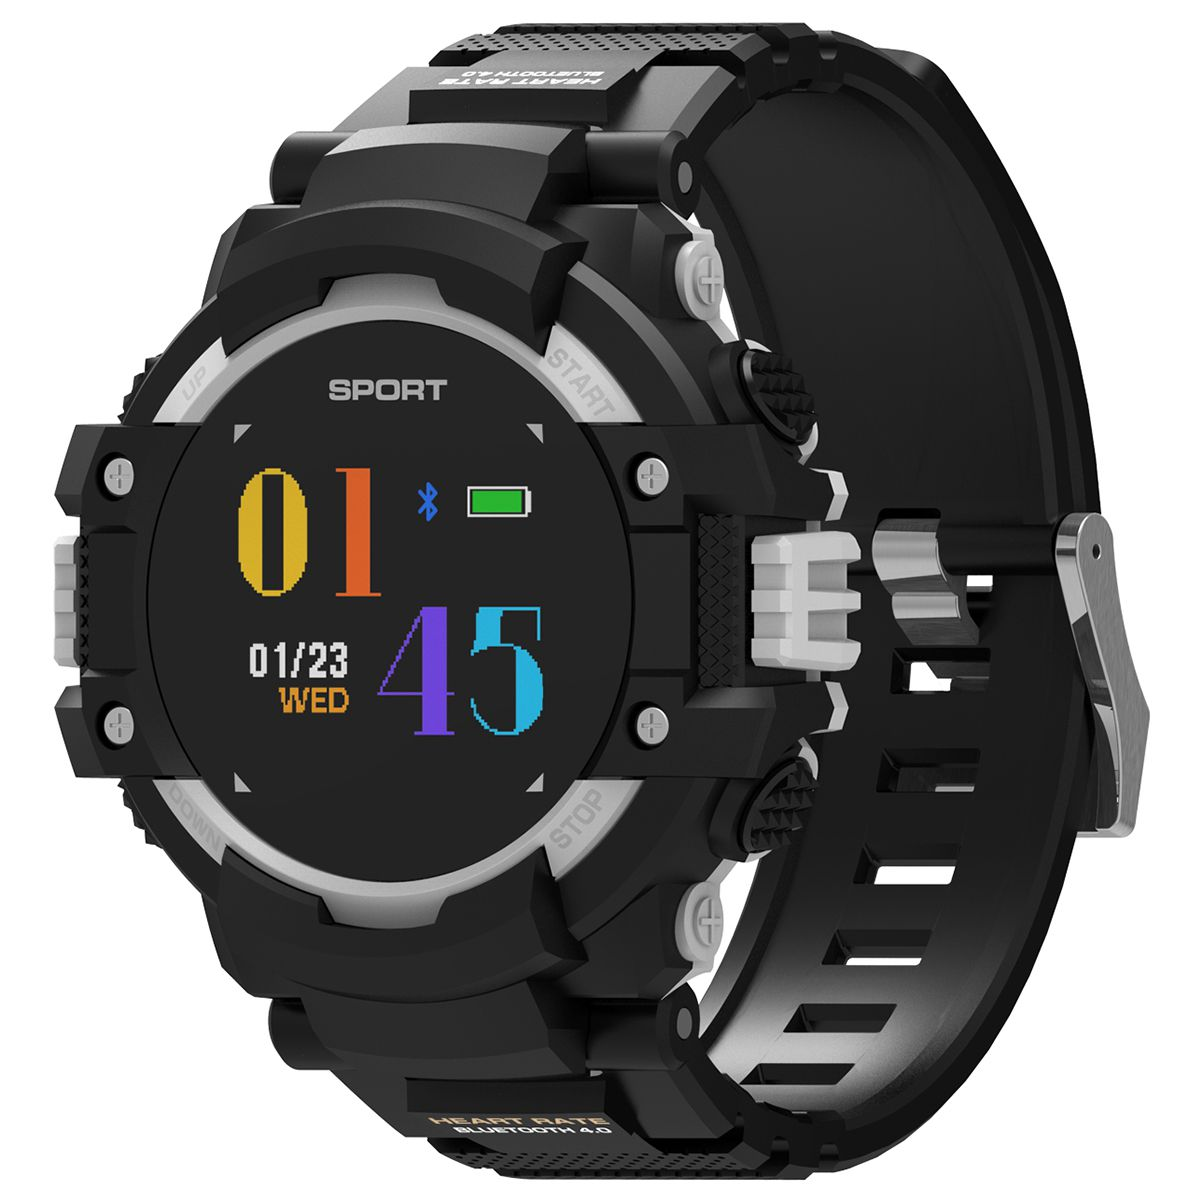 DTNO.1 F7 GPS Smart watch Wearable Devices Activity Tracker Bluetooth 4.2 Altimeter Barometer Compass GPS outdoors watch